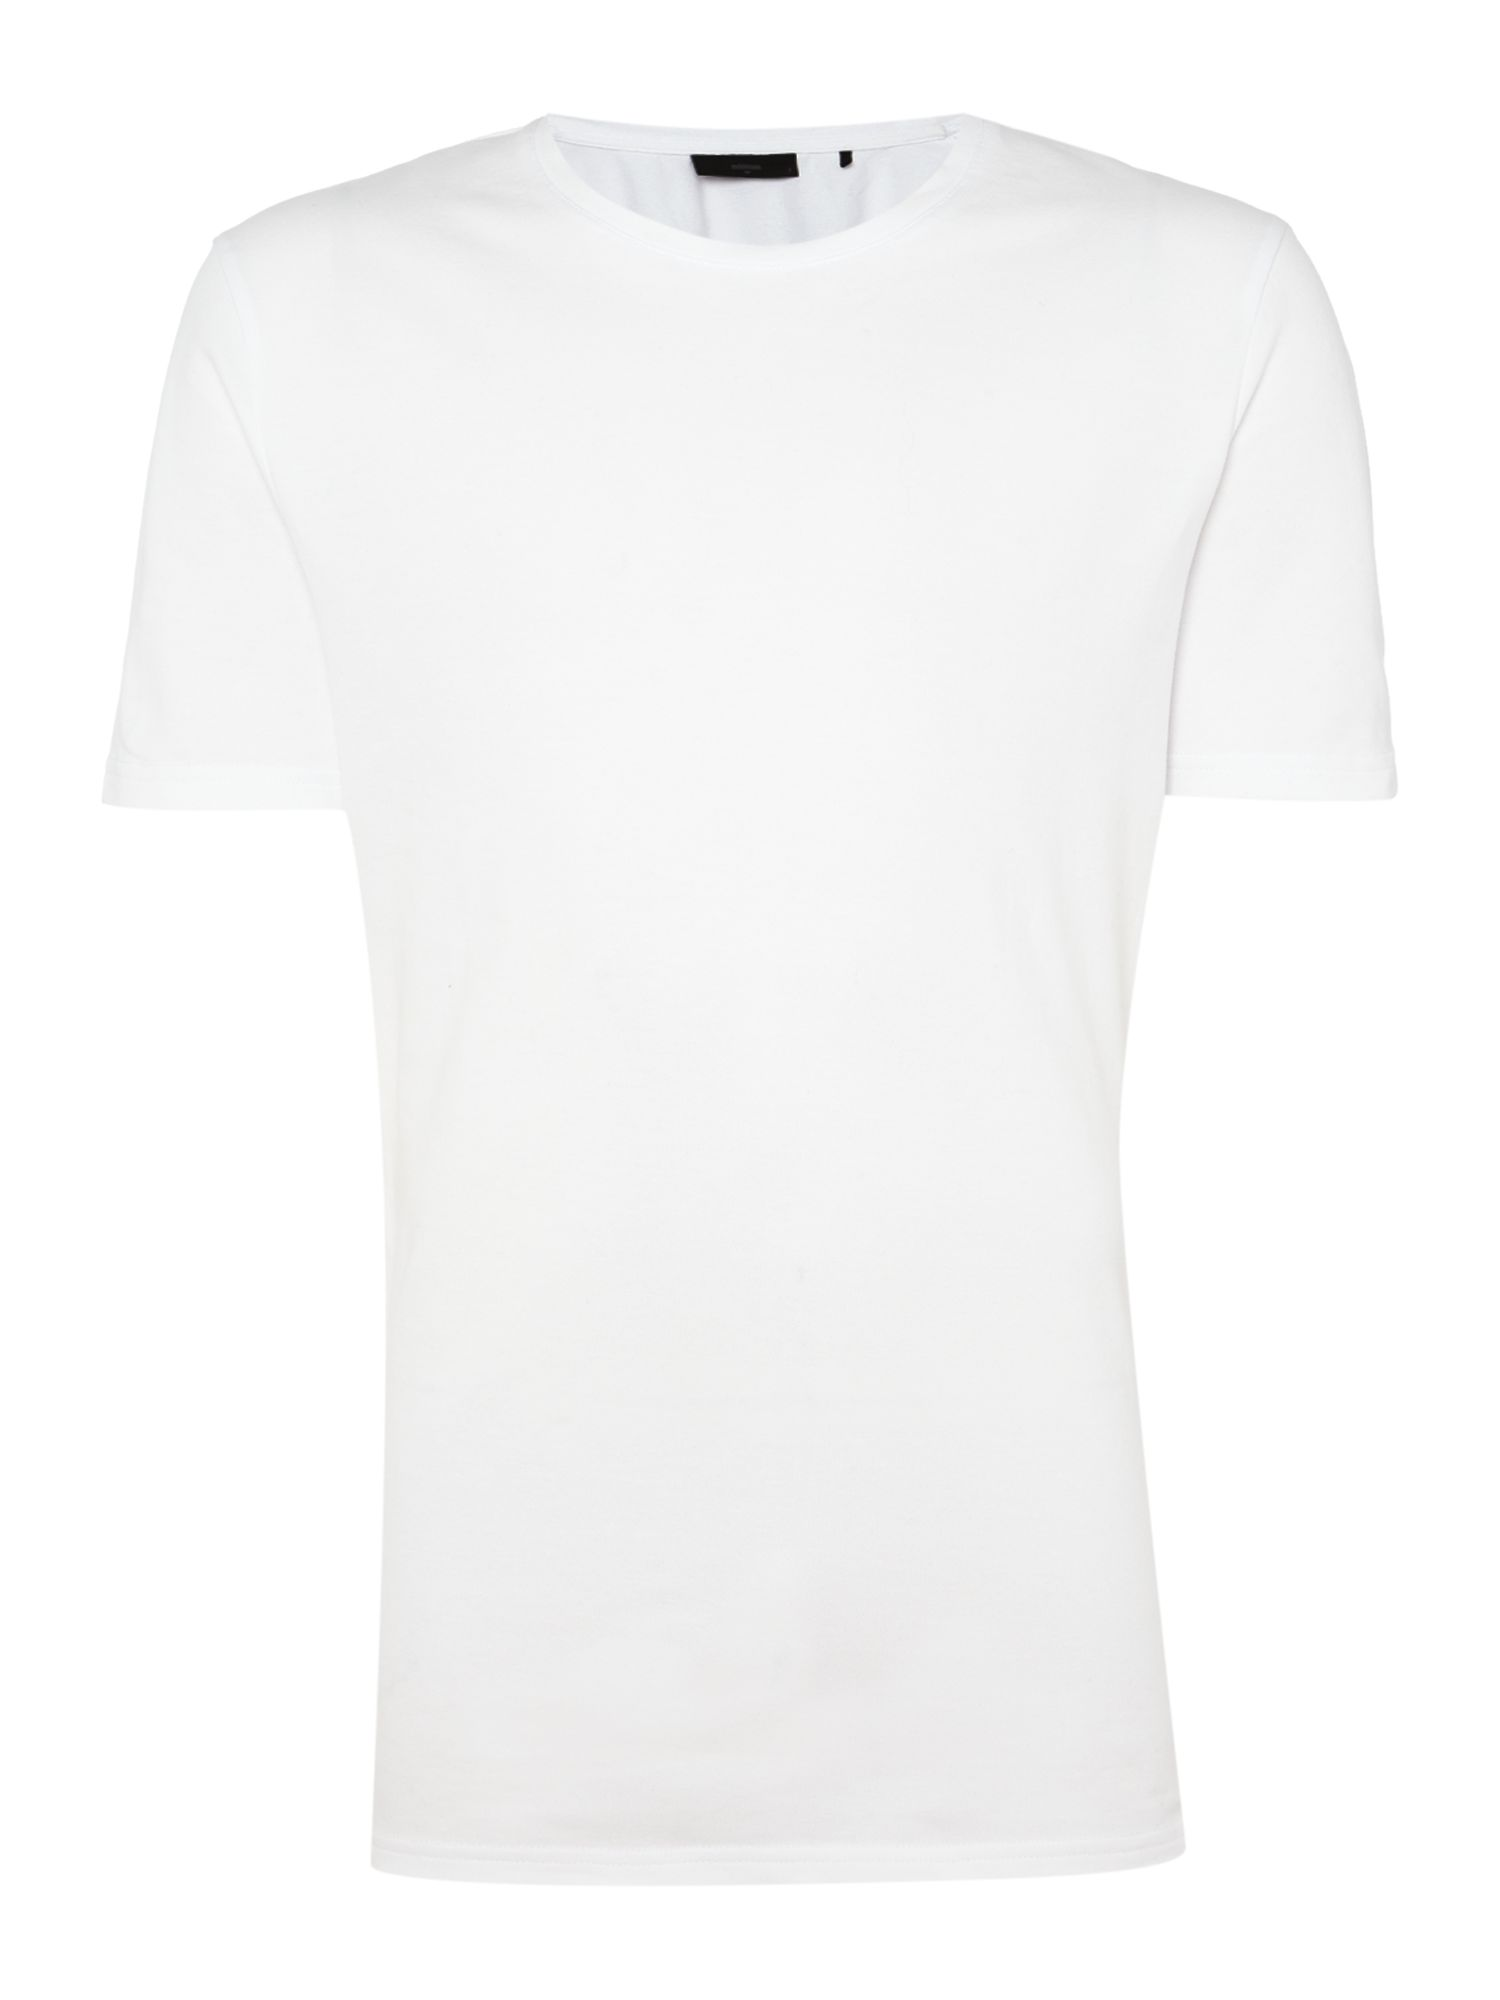 Men's Minimum Shirt Sleeve Crew Neck T-Shirt, White